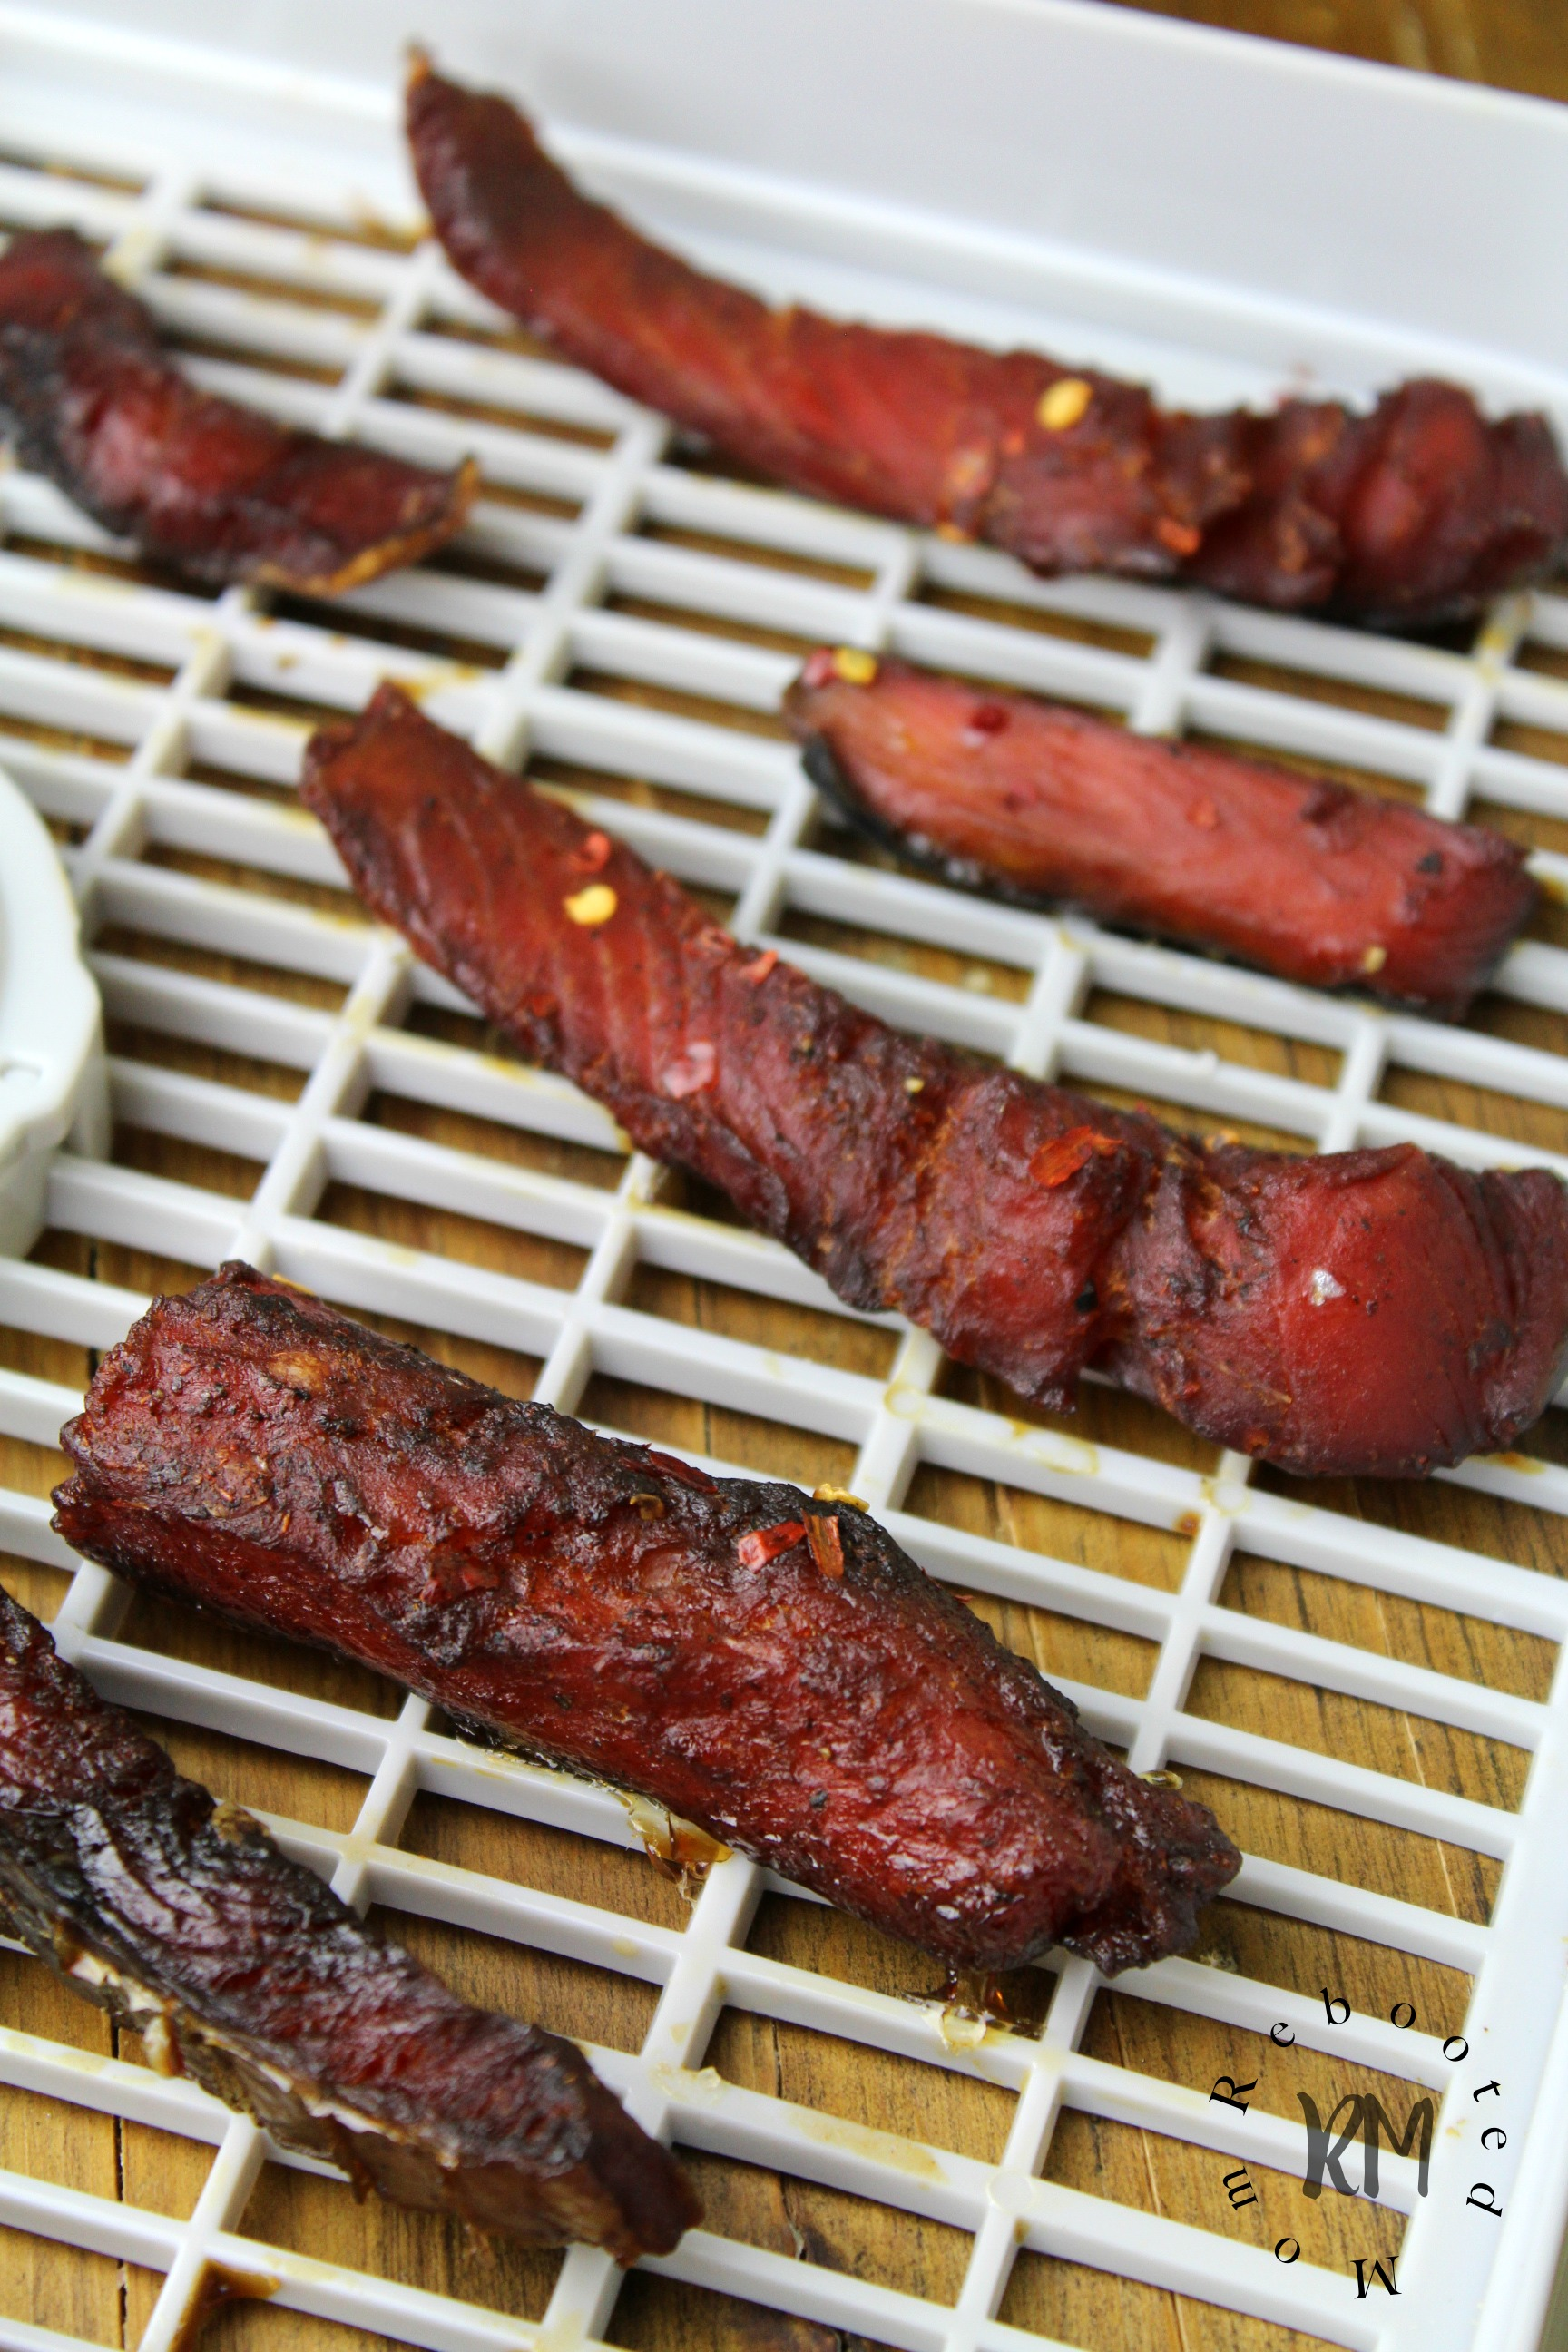 Made with simple ingredients, this salmon jerky will hit the spot as a satisfying snack with flavor that's both sweet and smoky.